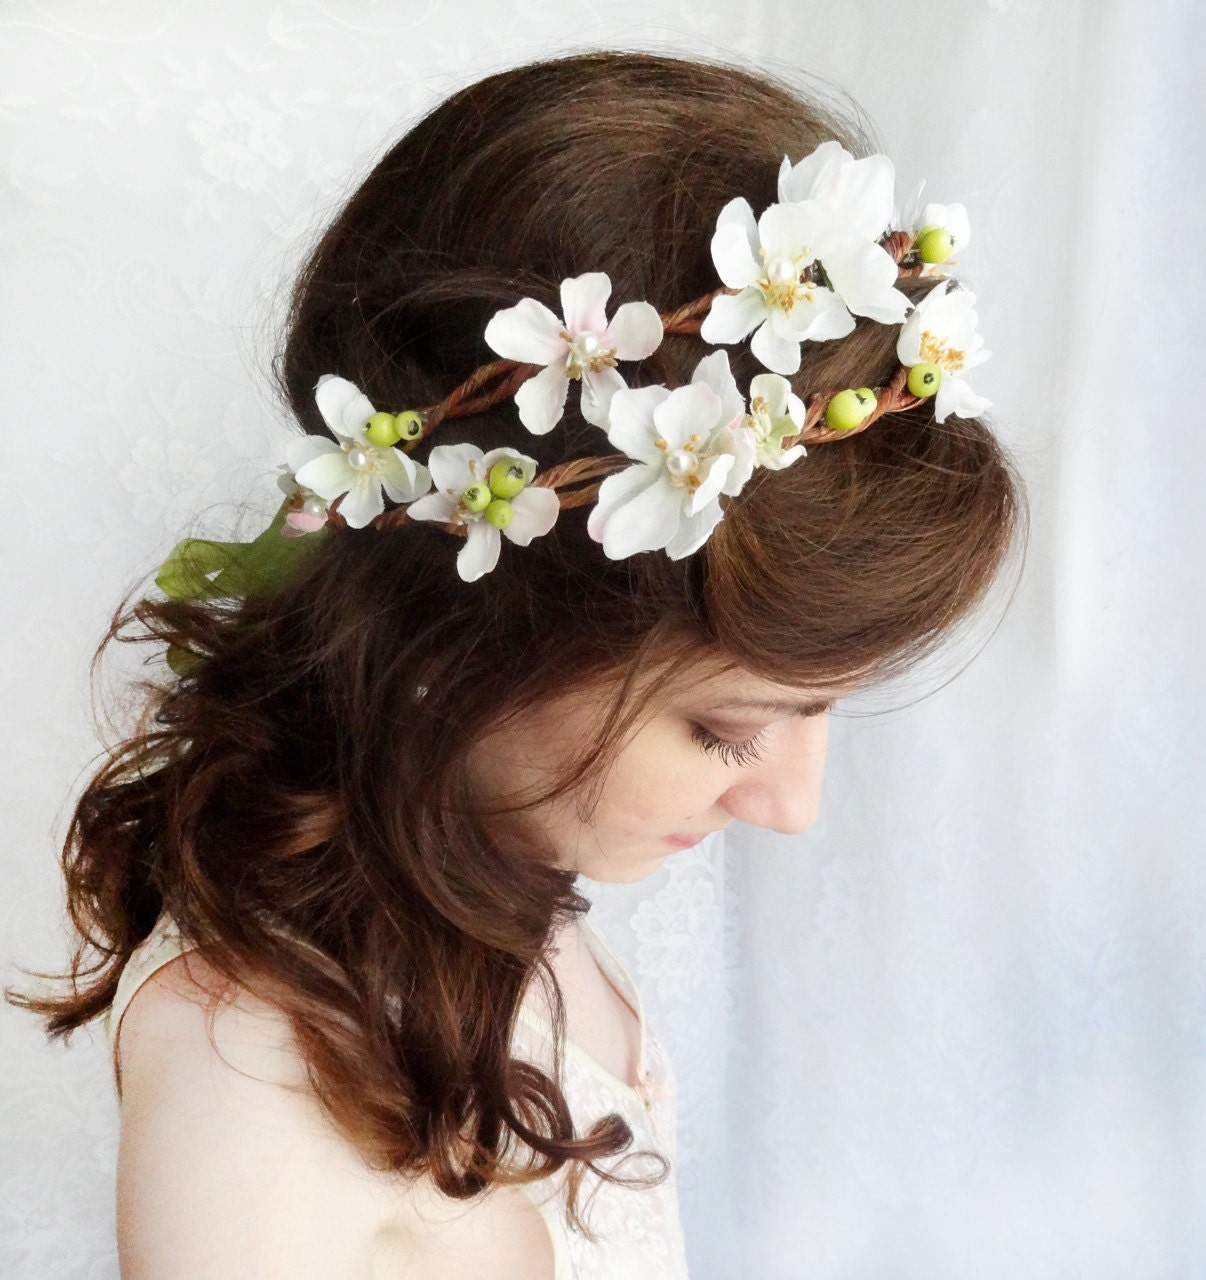 Flower Wedding Headpieces: Floral Crown Rustic Wedding Headpiece White Bridal Hair